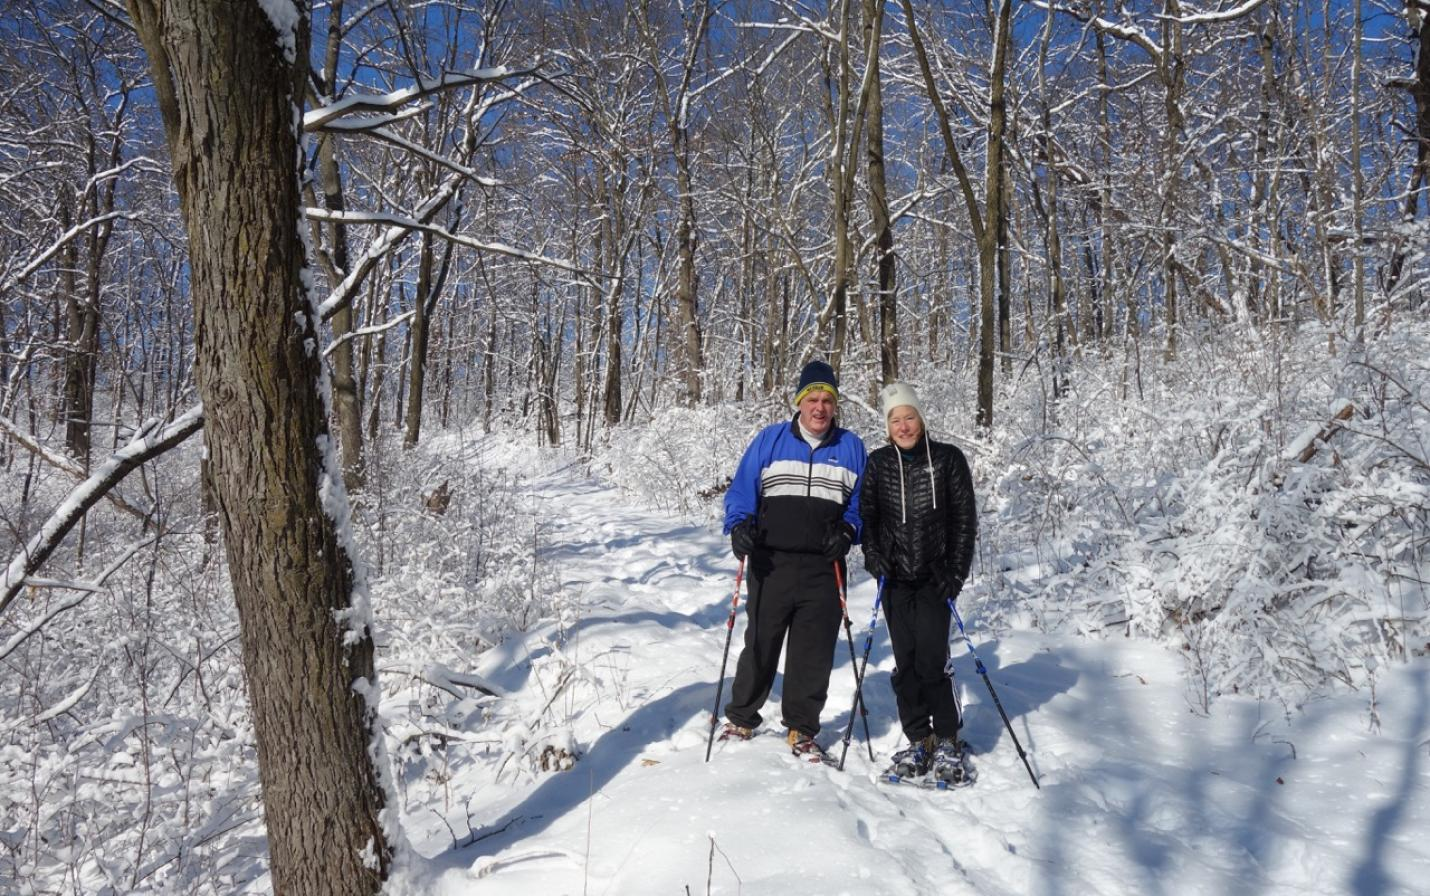 Snowshoeing at Greens Coulee